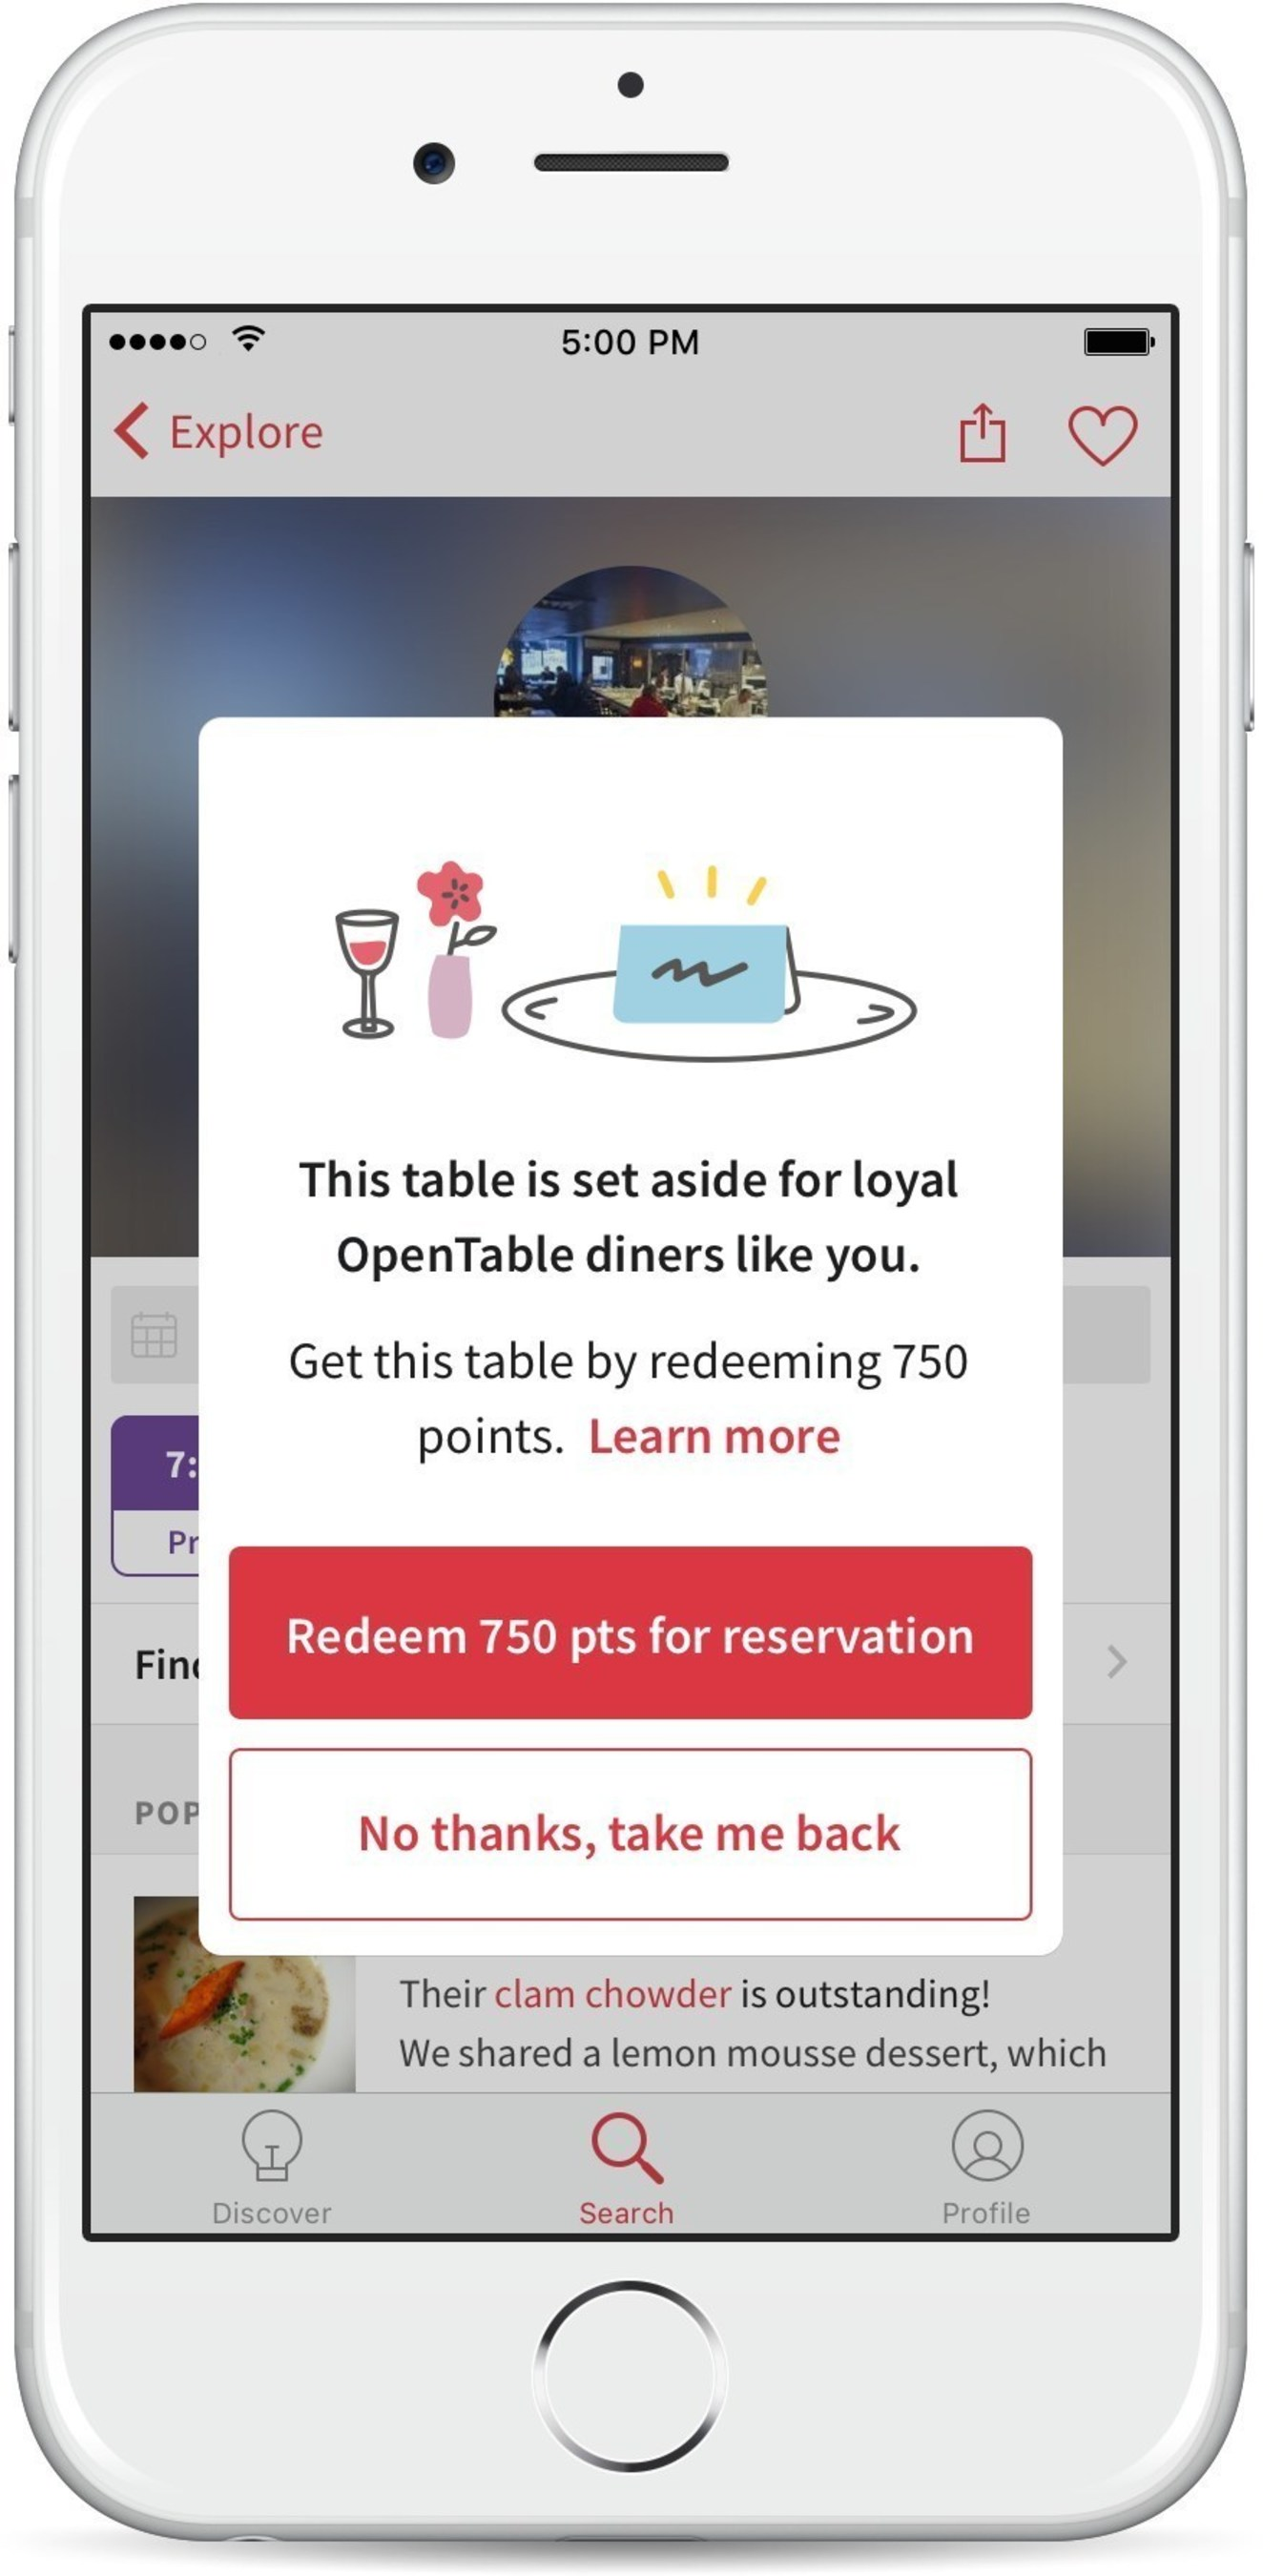 Opentable Pilot In Boston Rewards Frequent Diners With Special Access To Hard To Book Restaurants